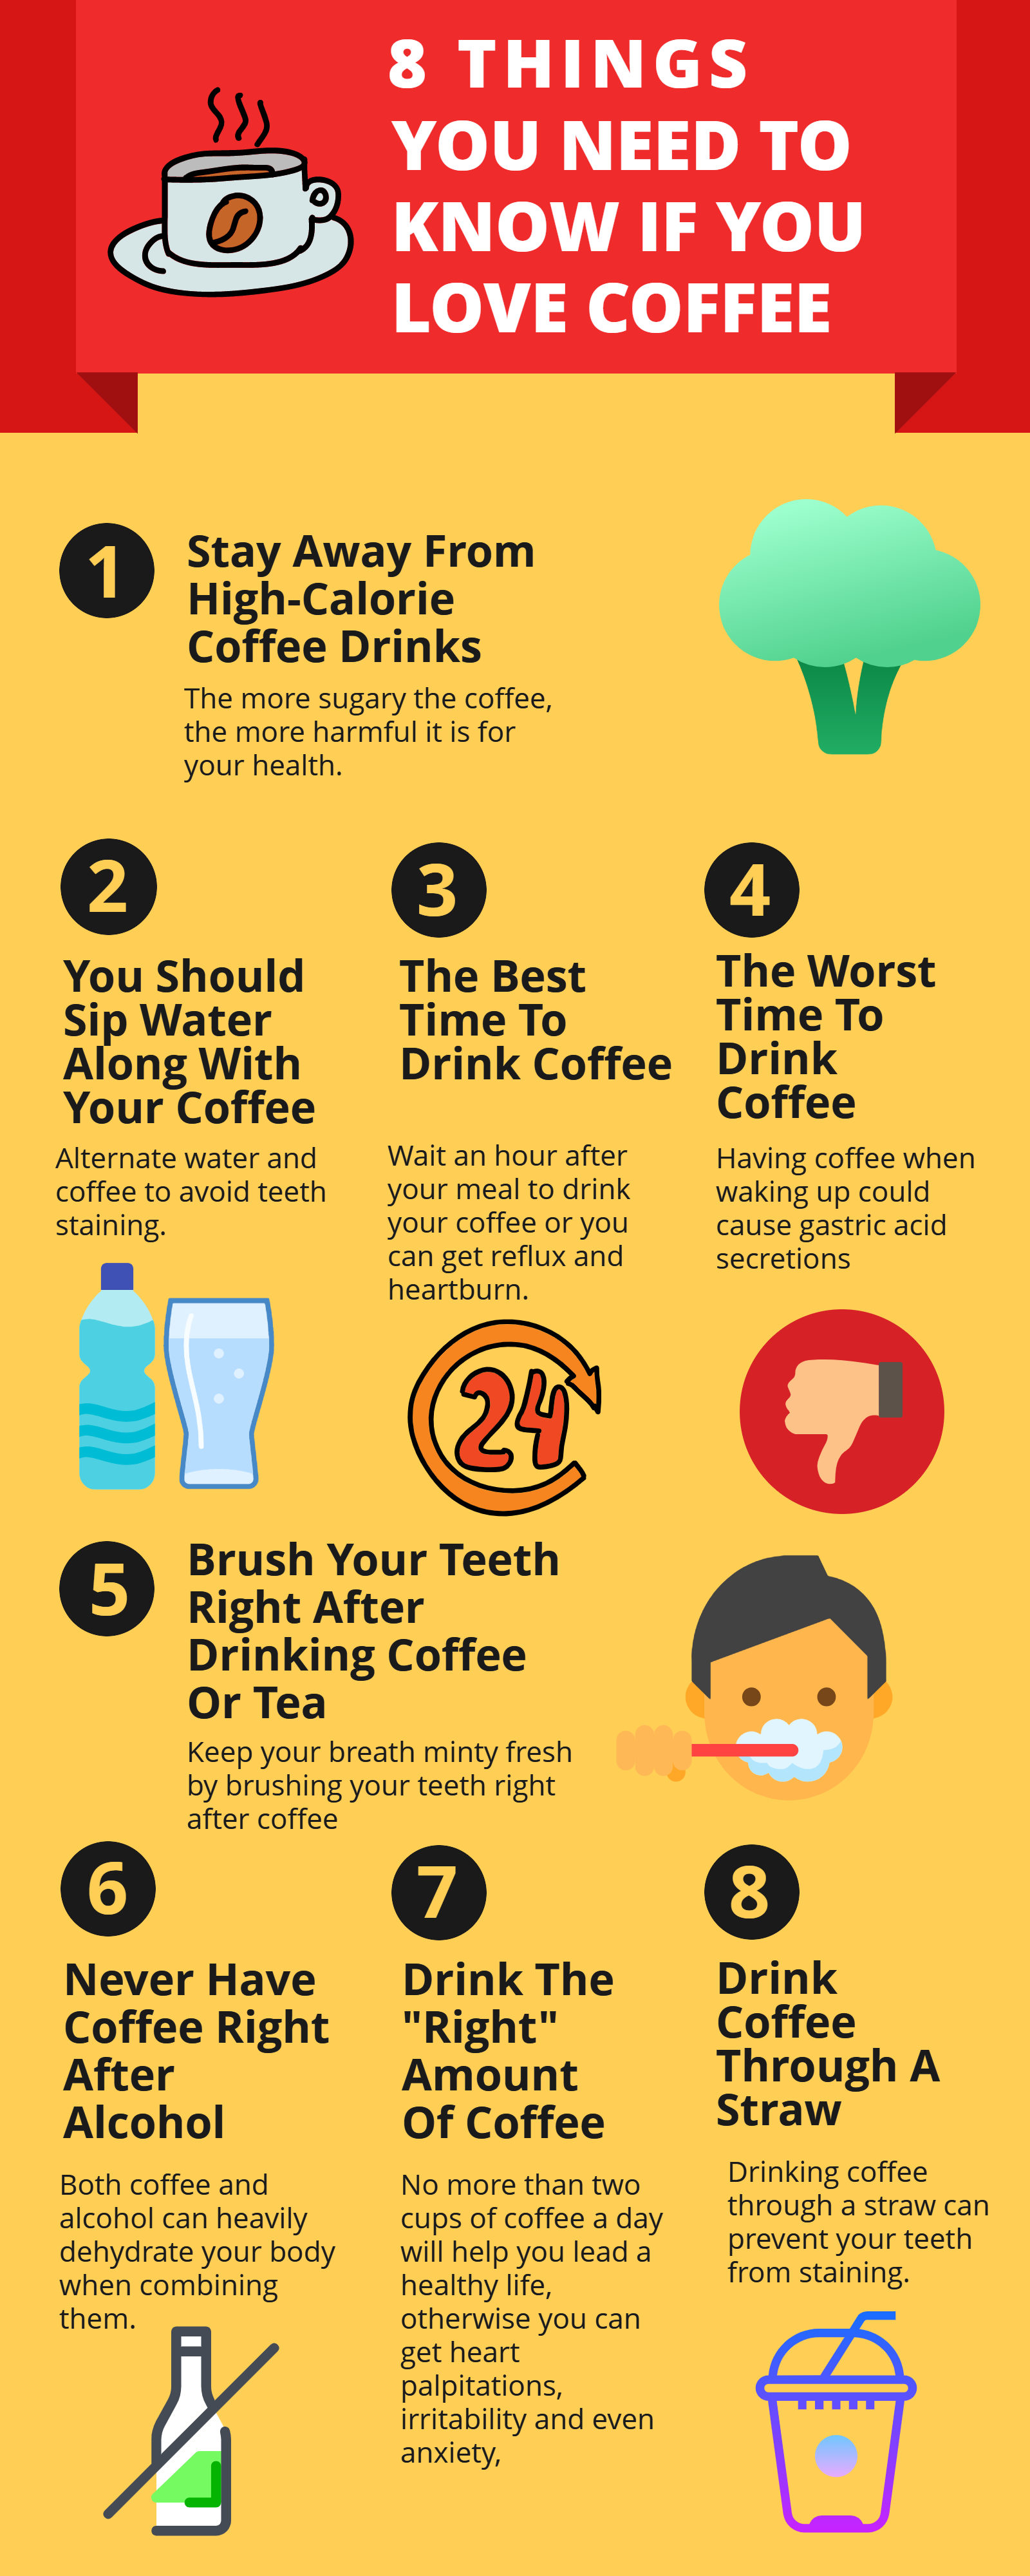 8 Things You Need to Know if You Love Coffee- Infographic